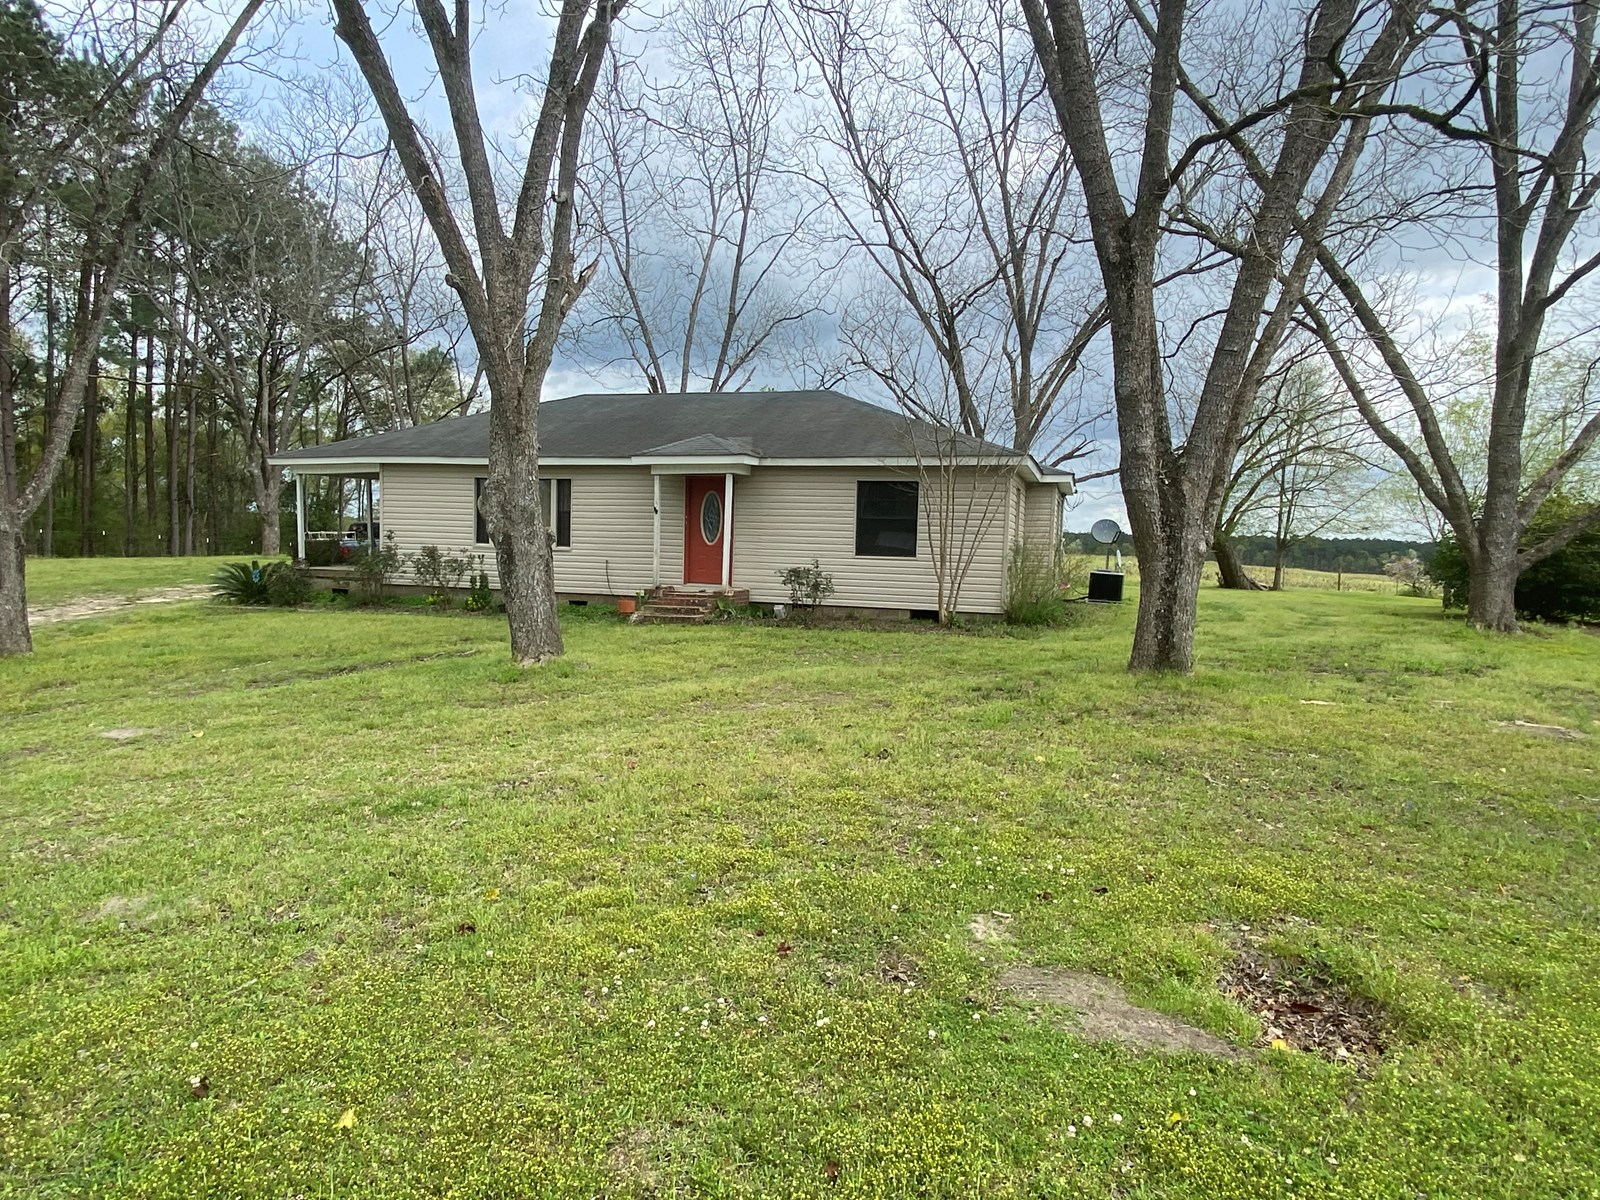 3 bedroom, 2 bath home on Dozier Hwy